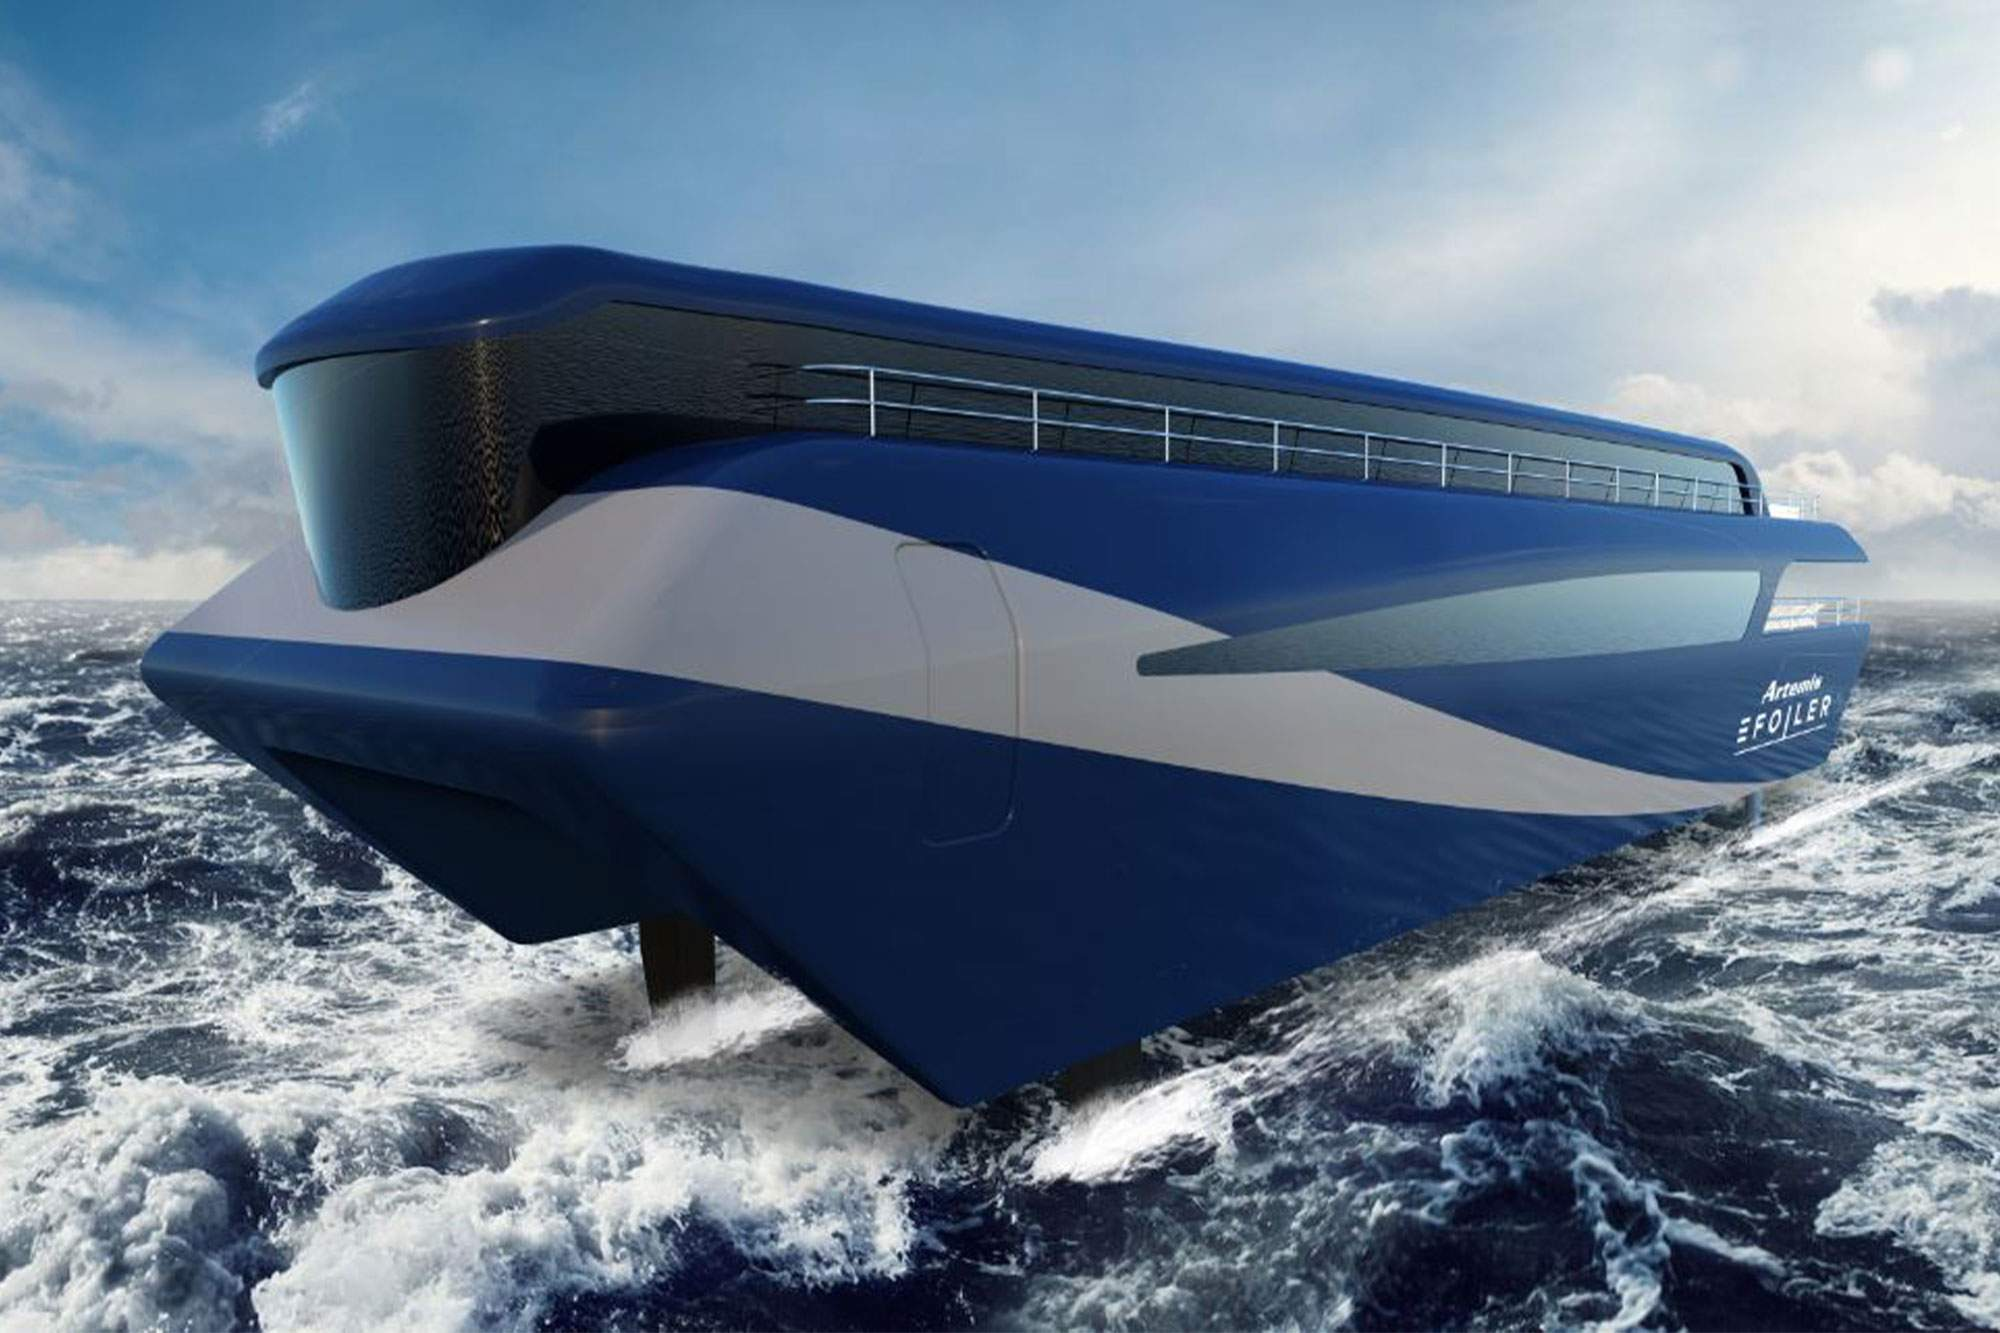 Queen's part of £33m funding boost to develop zero emission ferries